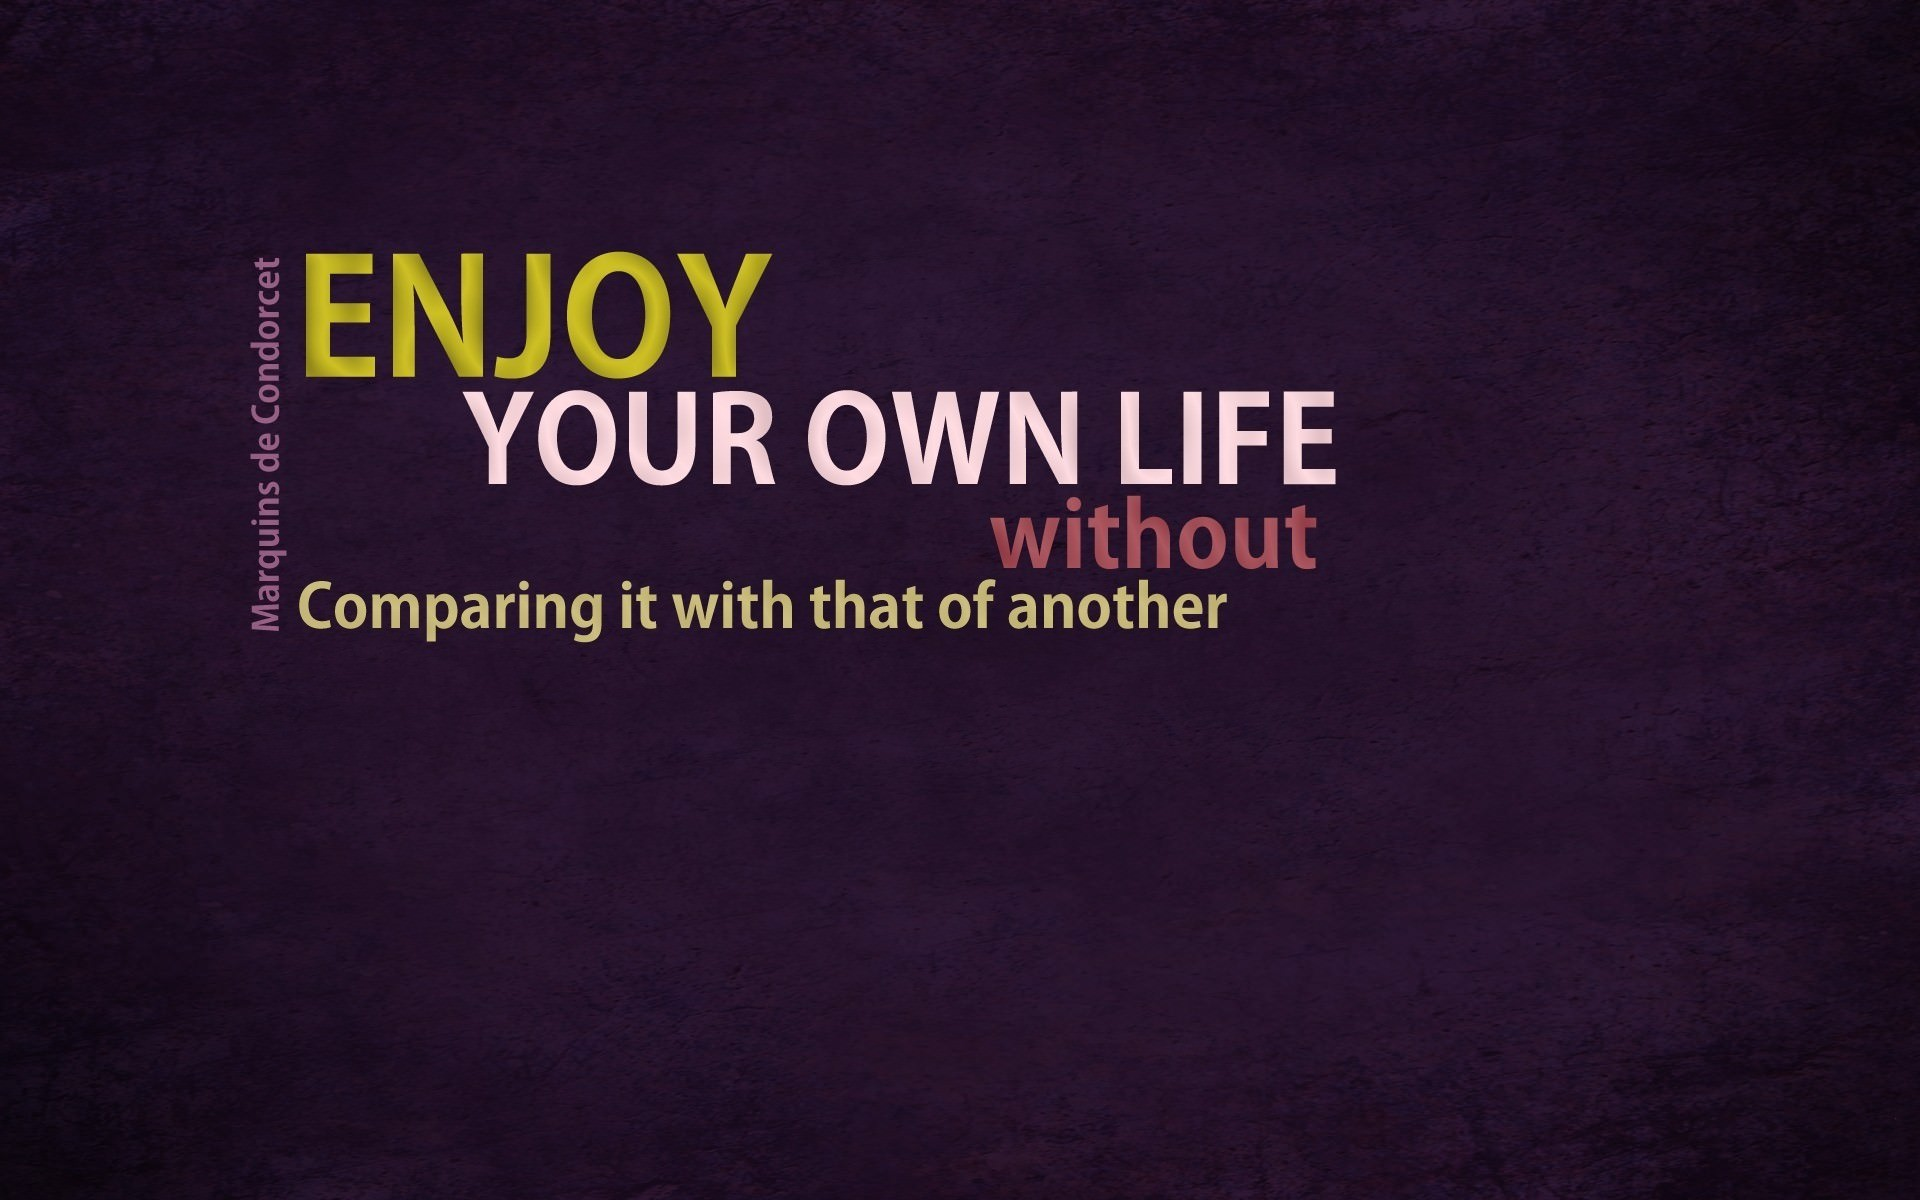 Great Wallpaper Mobile Inspirational - Enjoy-Your-Own-Life2  Gallery_789146.jpg